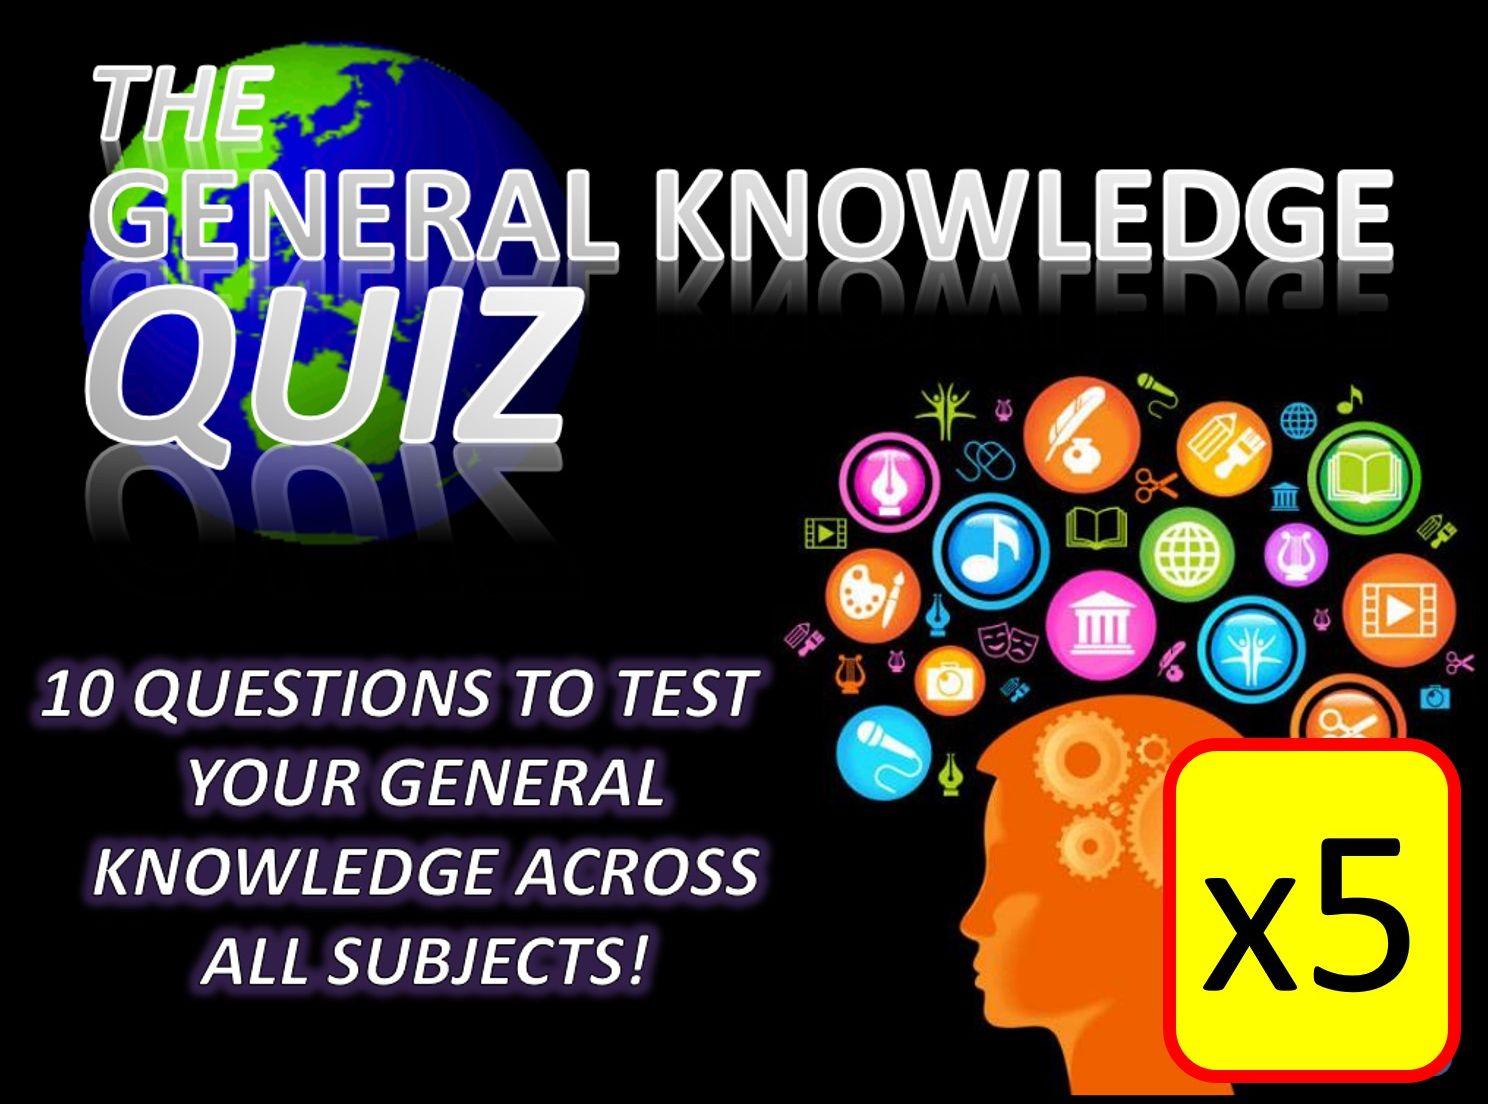 5 x The General Knowledge Pub Quiz (#11-15) Form Tutor Time Cross Curricular Settler End of Term